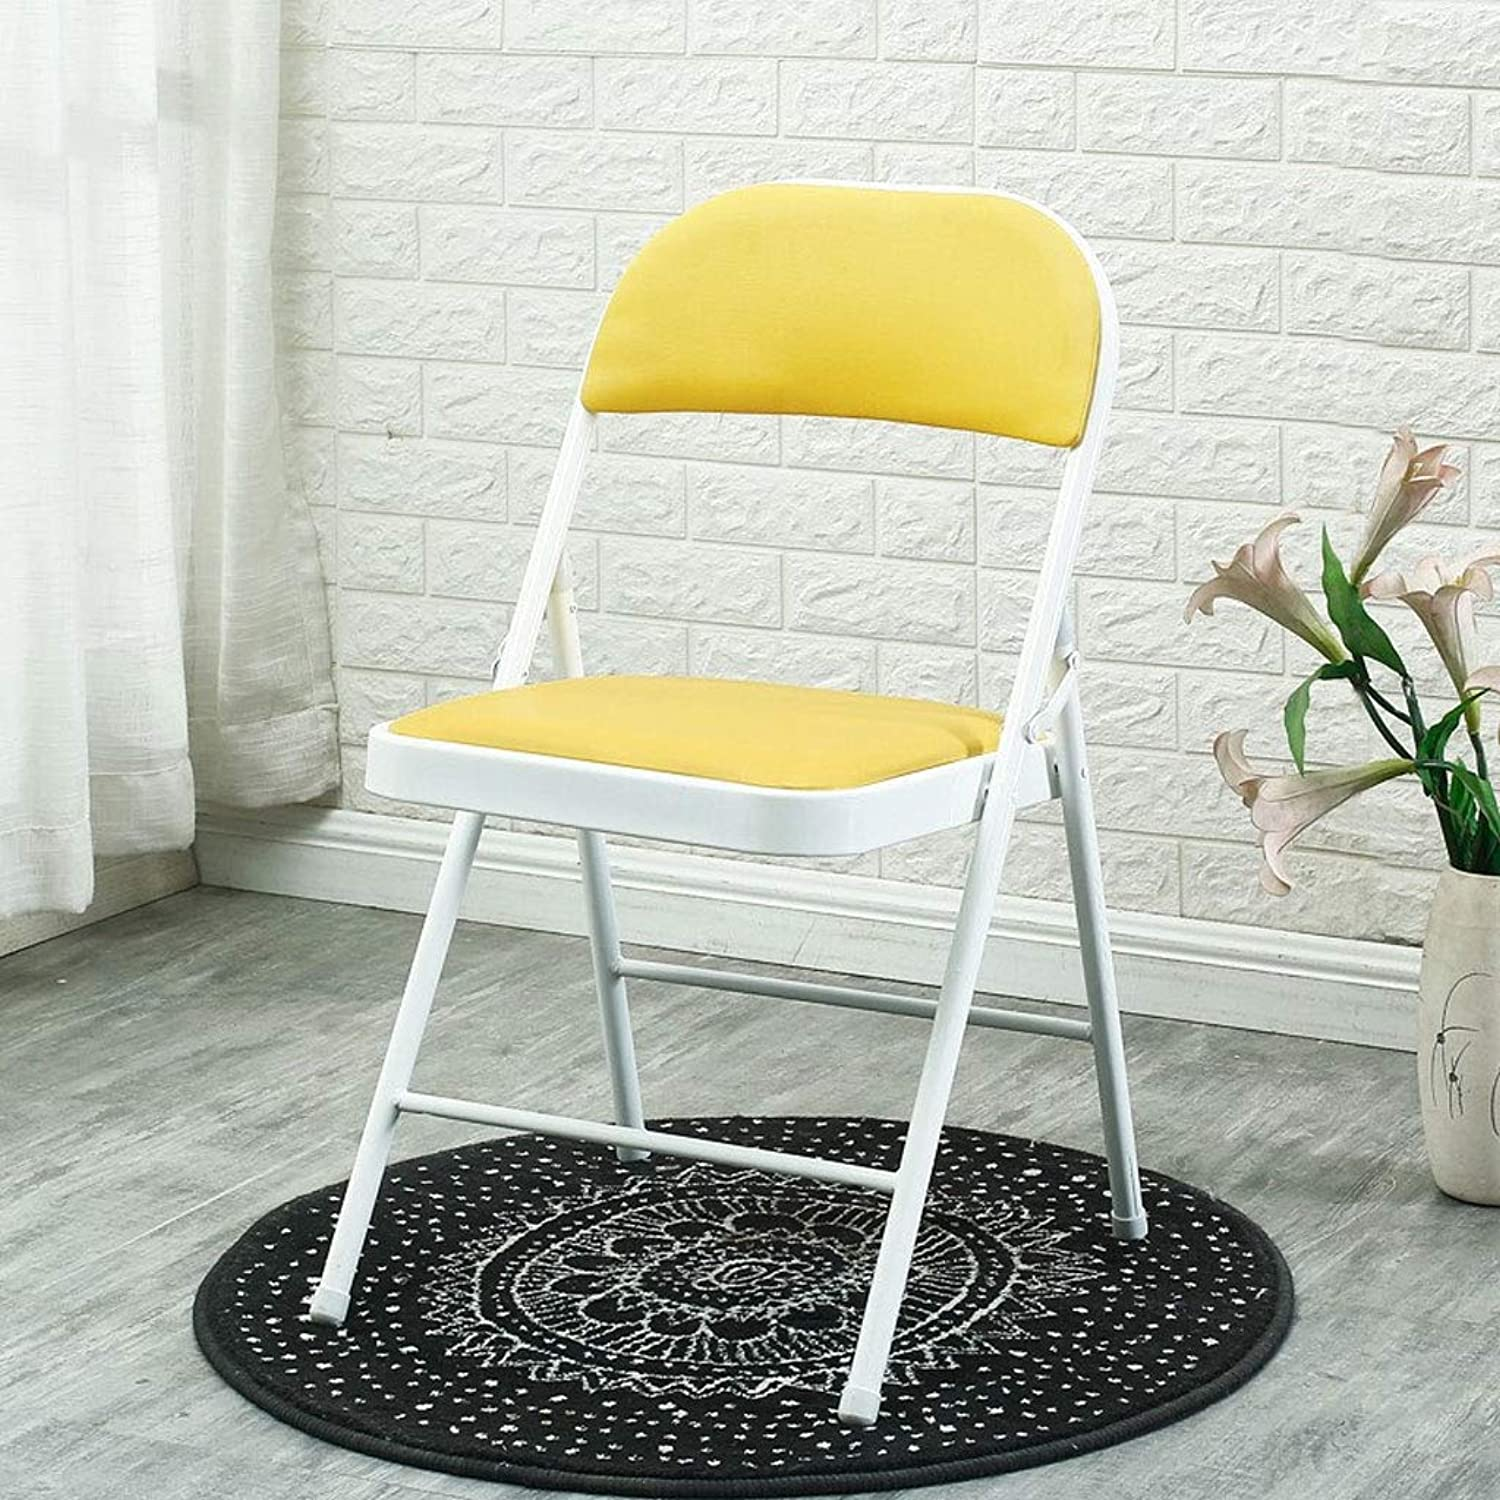 Indoor Furniture Folding Chair Faux Leather Seat & Back Rest Computer Office Ergonomic Conference Chair (color   Yellow)